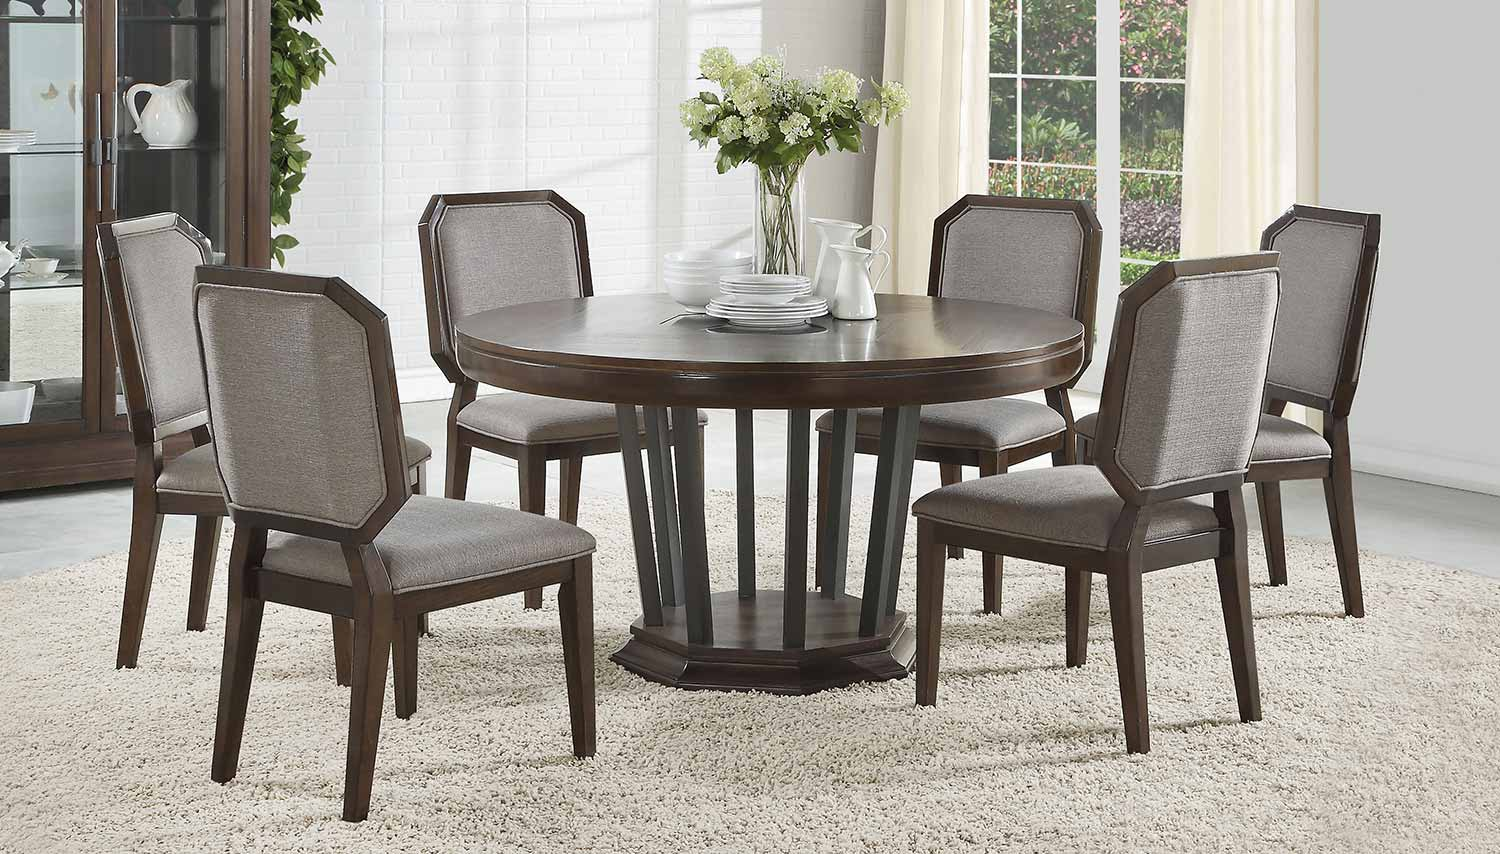 Acme Selma Round Dining Set with Single Pedestal - Tobacco